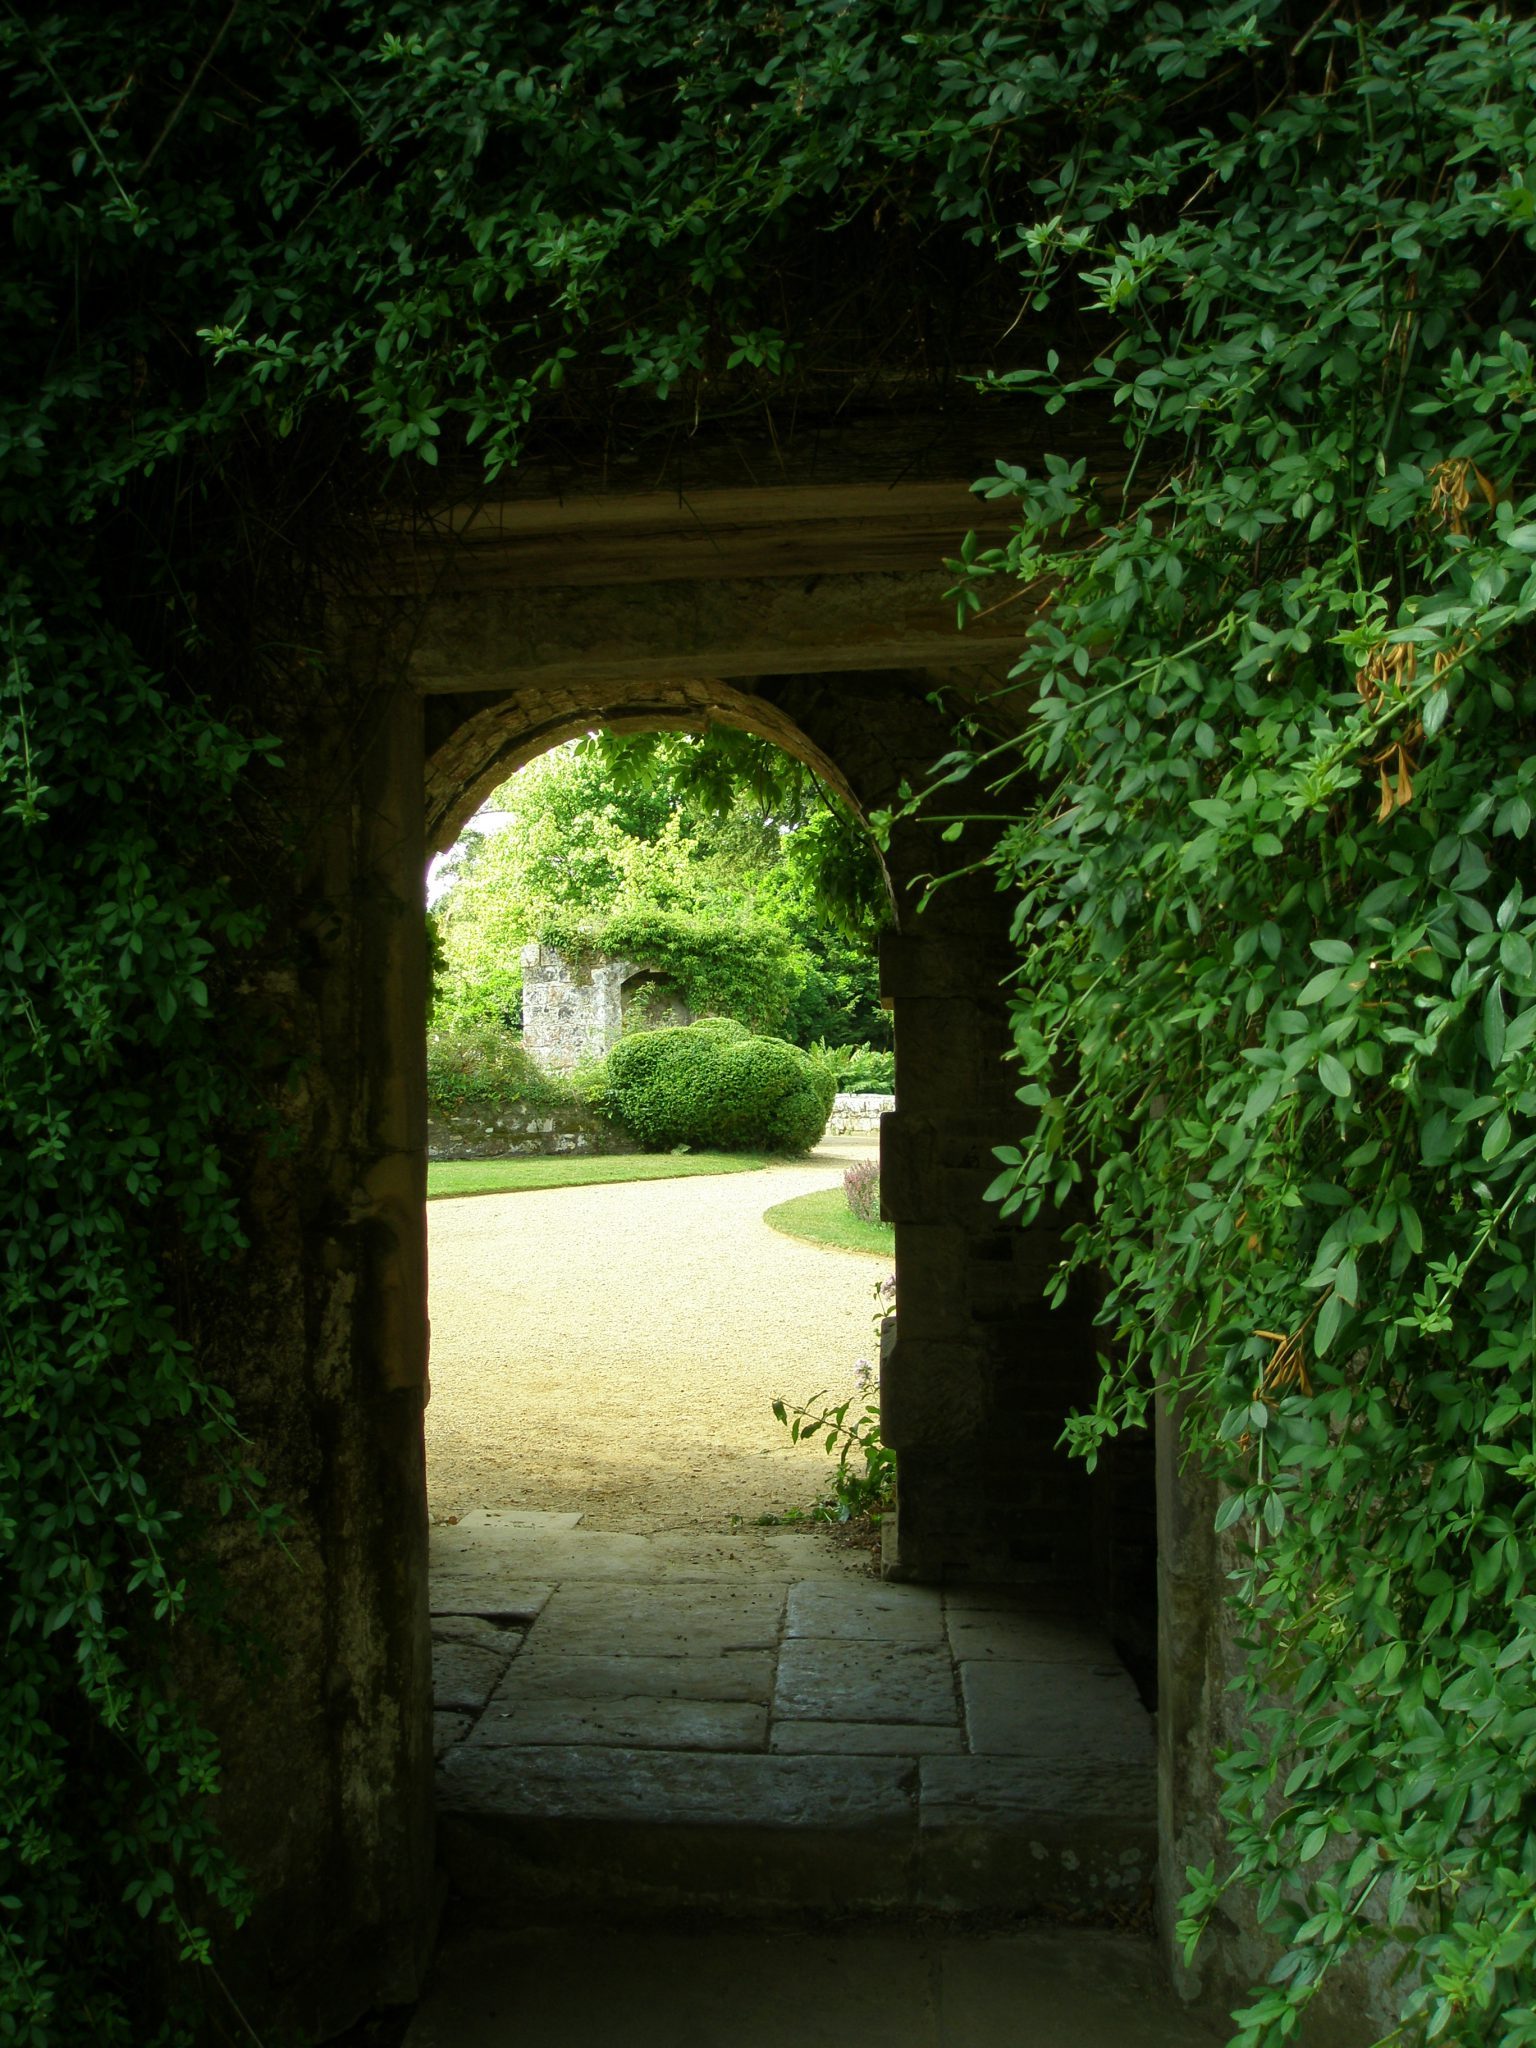 A peek OUT, from the same, small walled garden